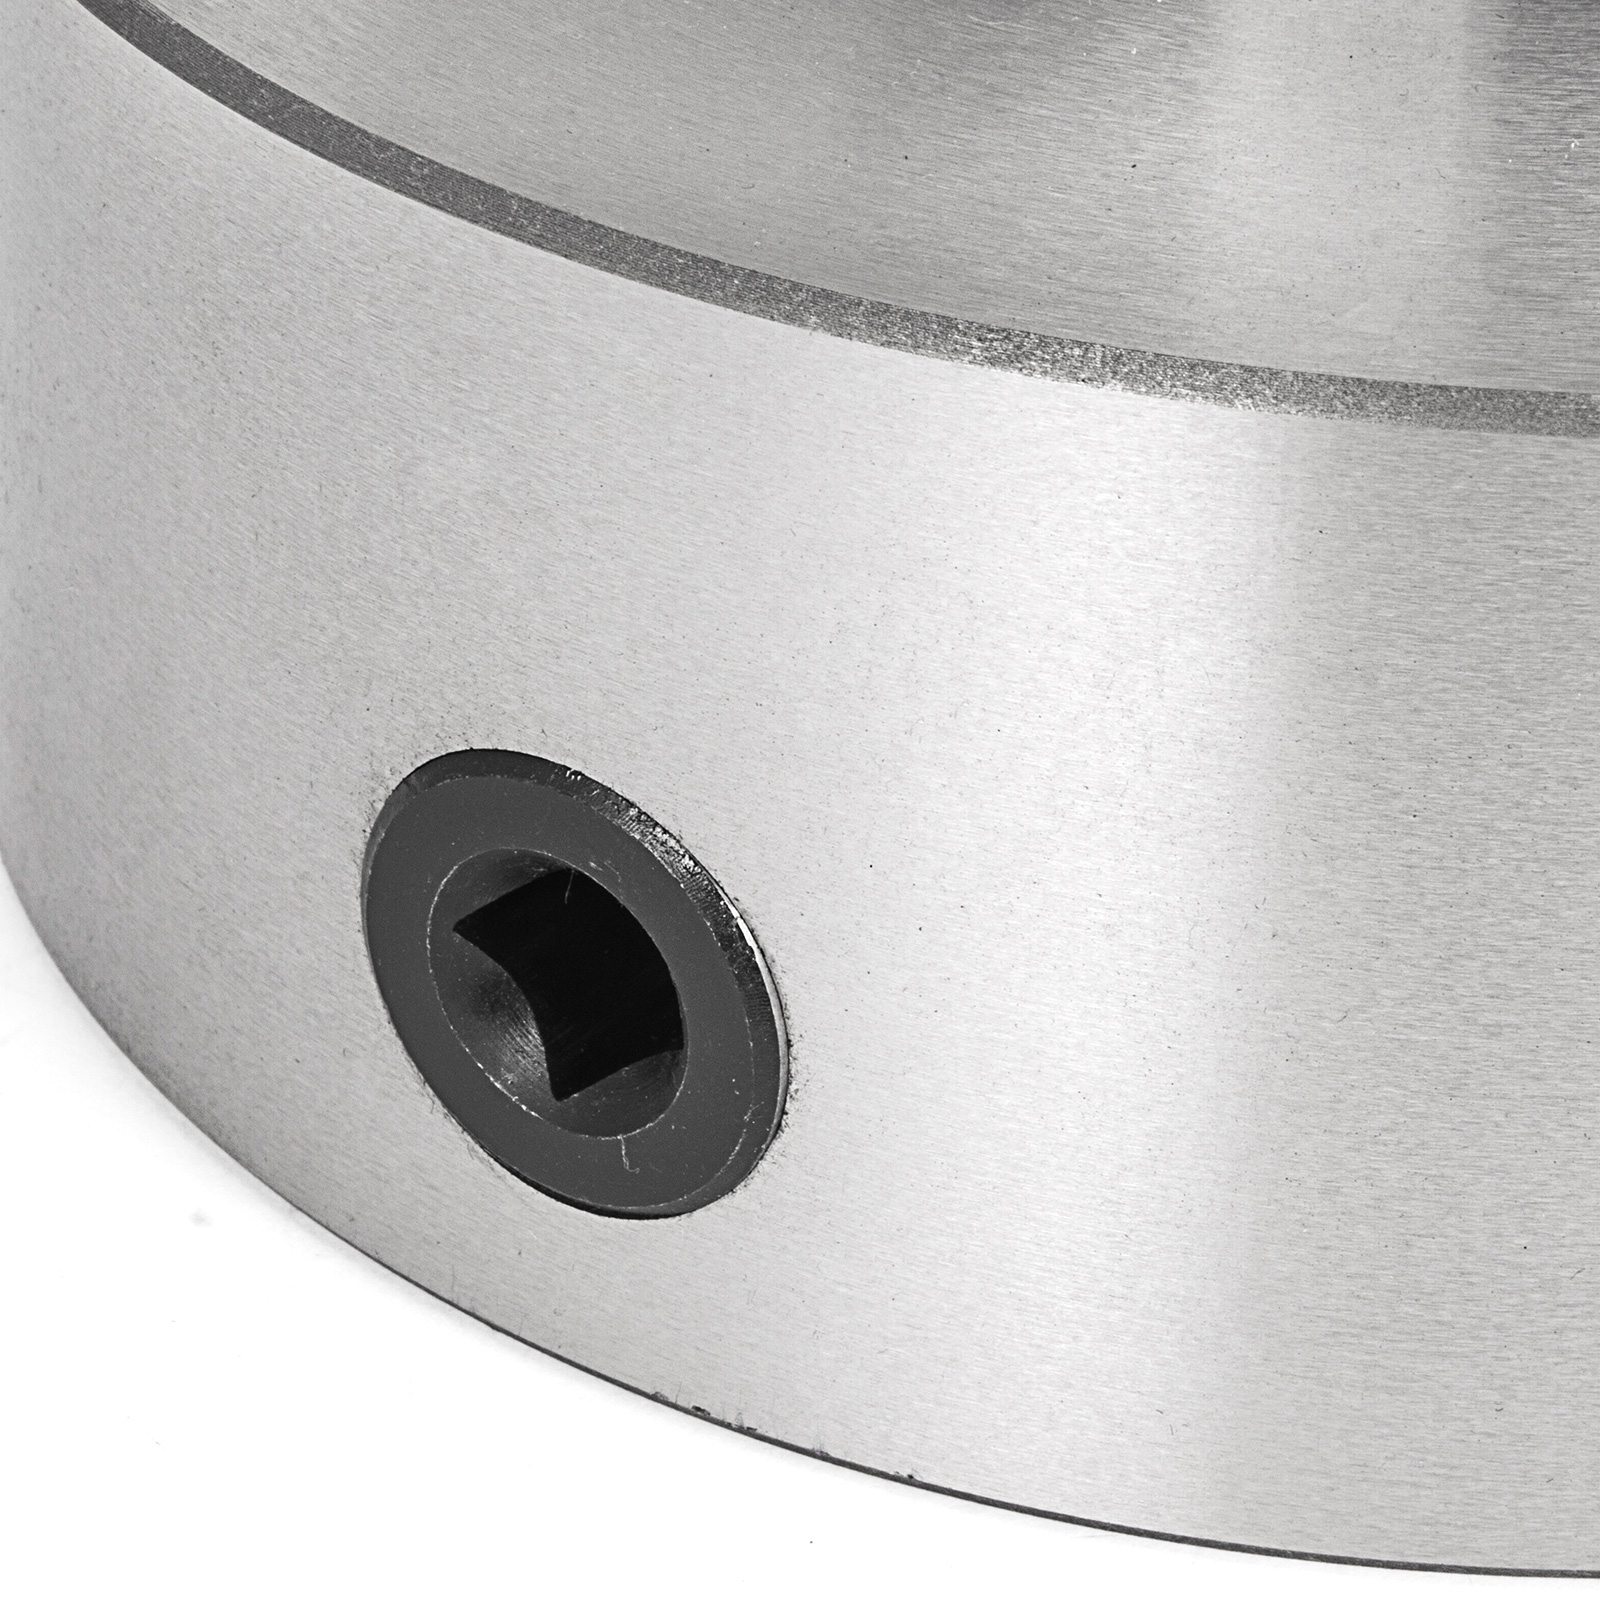 160-400mm-3-Jaw-Metal-Lathe-Chuck-Reversible-Independent-Key-Handle thumbnail 55